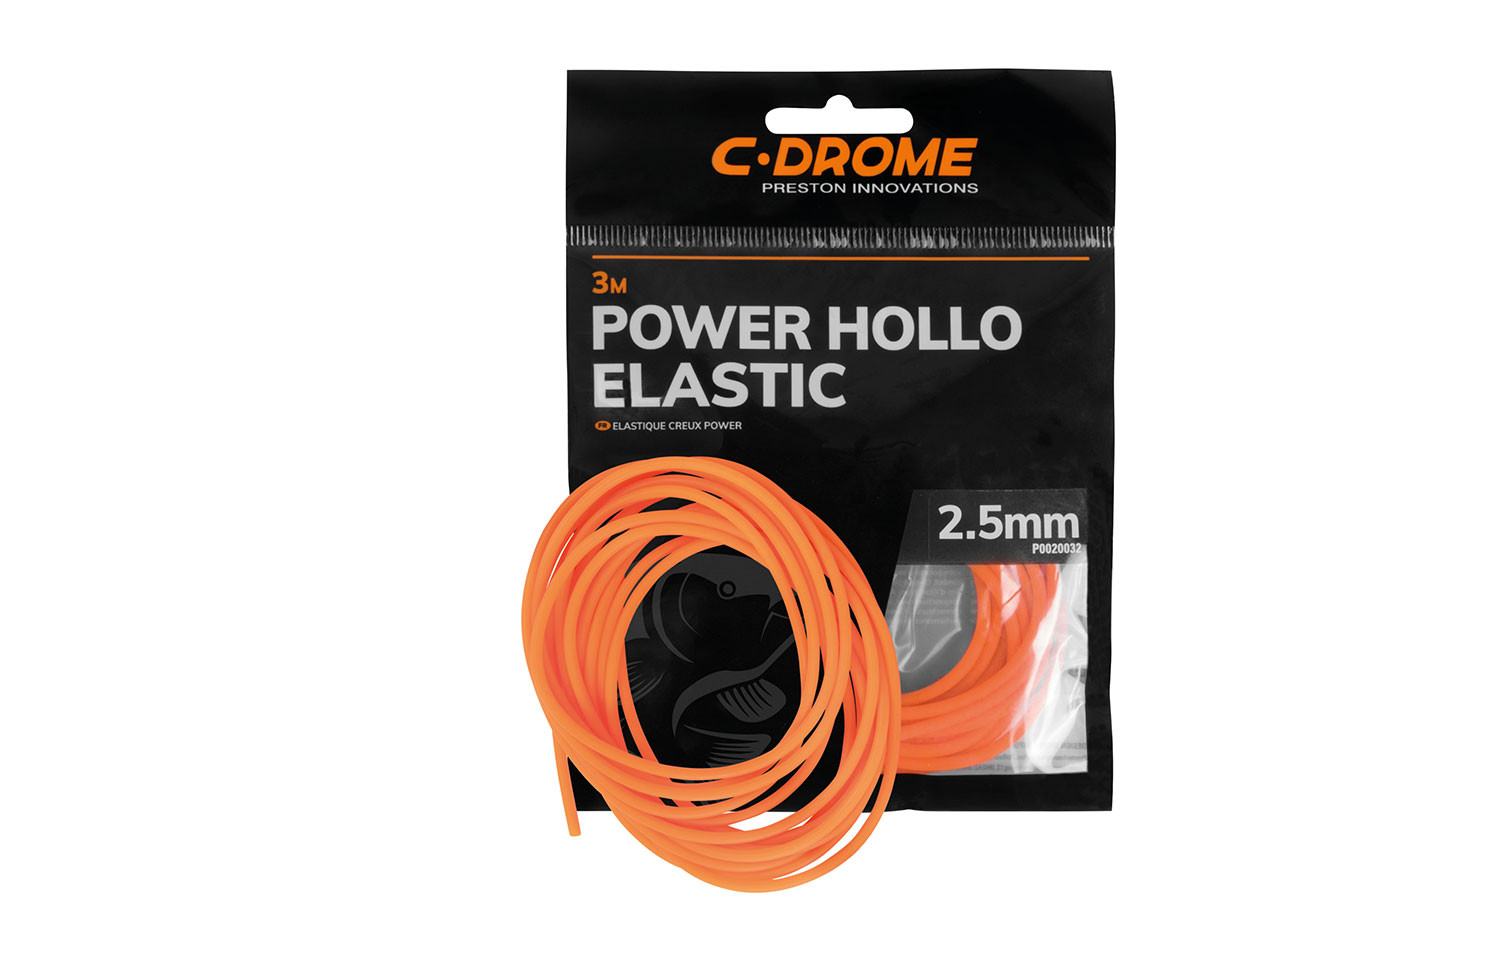 Preston C-drome POWER HOLLO ELASTIC 3m 2,5mm